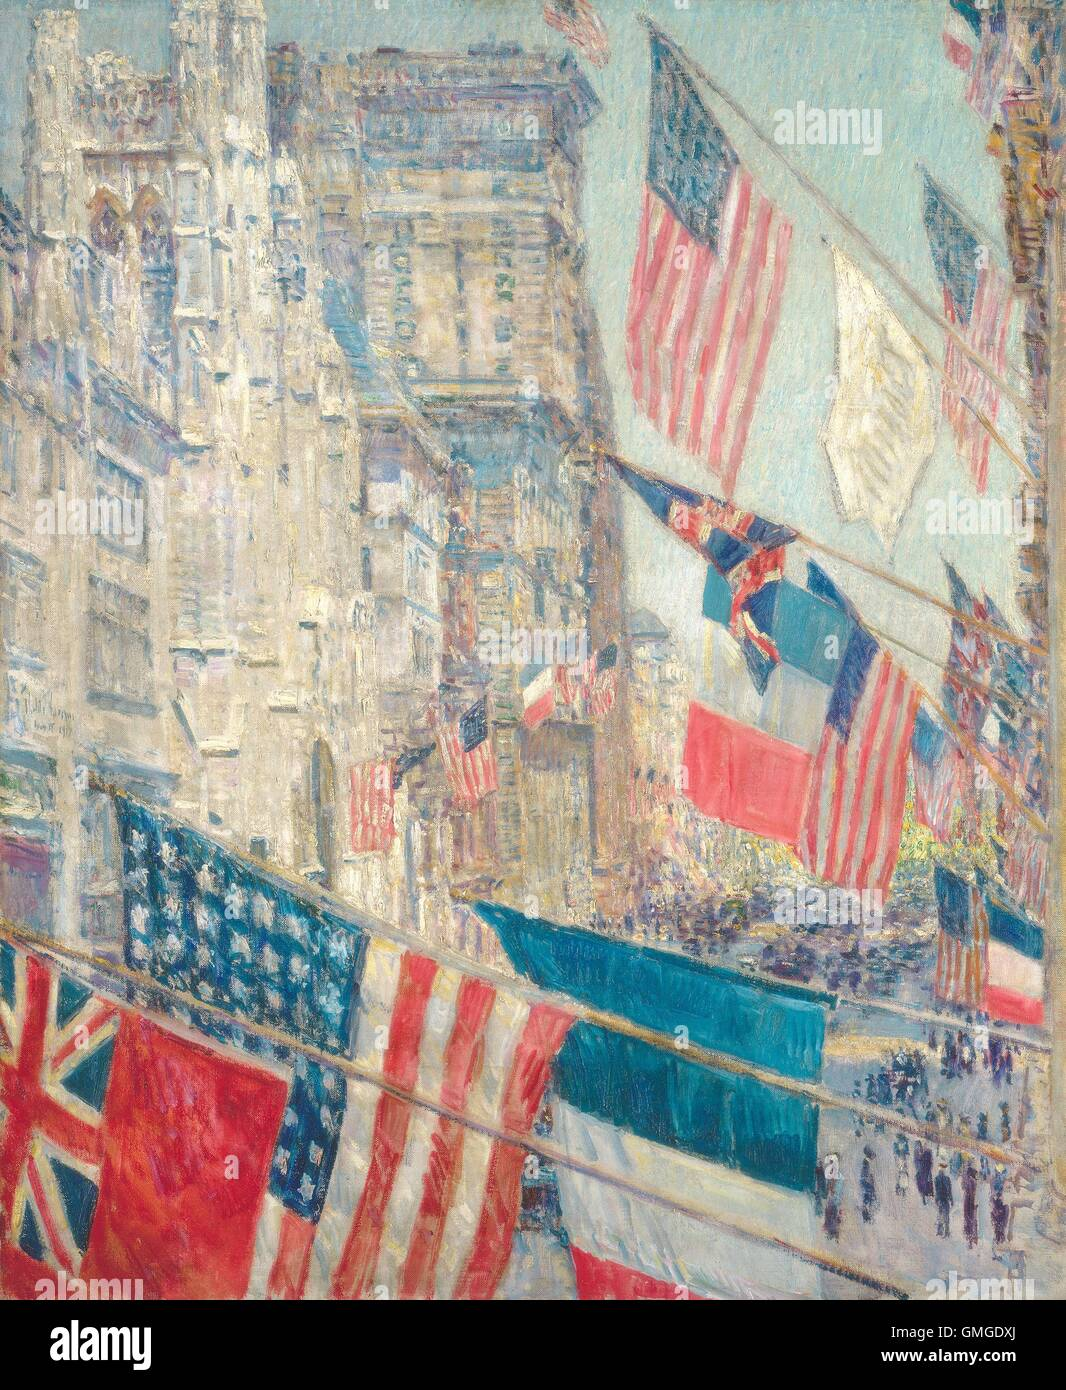 Allies Day, May 1917, by Childe Hassam, 1917, American impressionist painting, oil on canvas. On May 7 & 9, - Stock Image